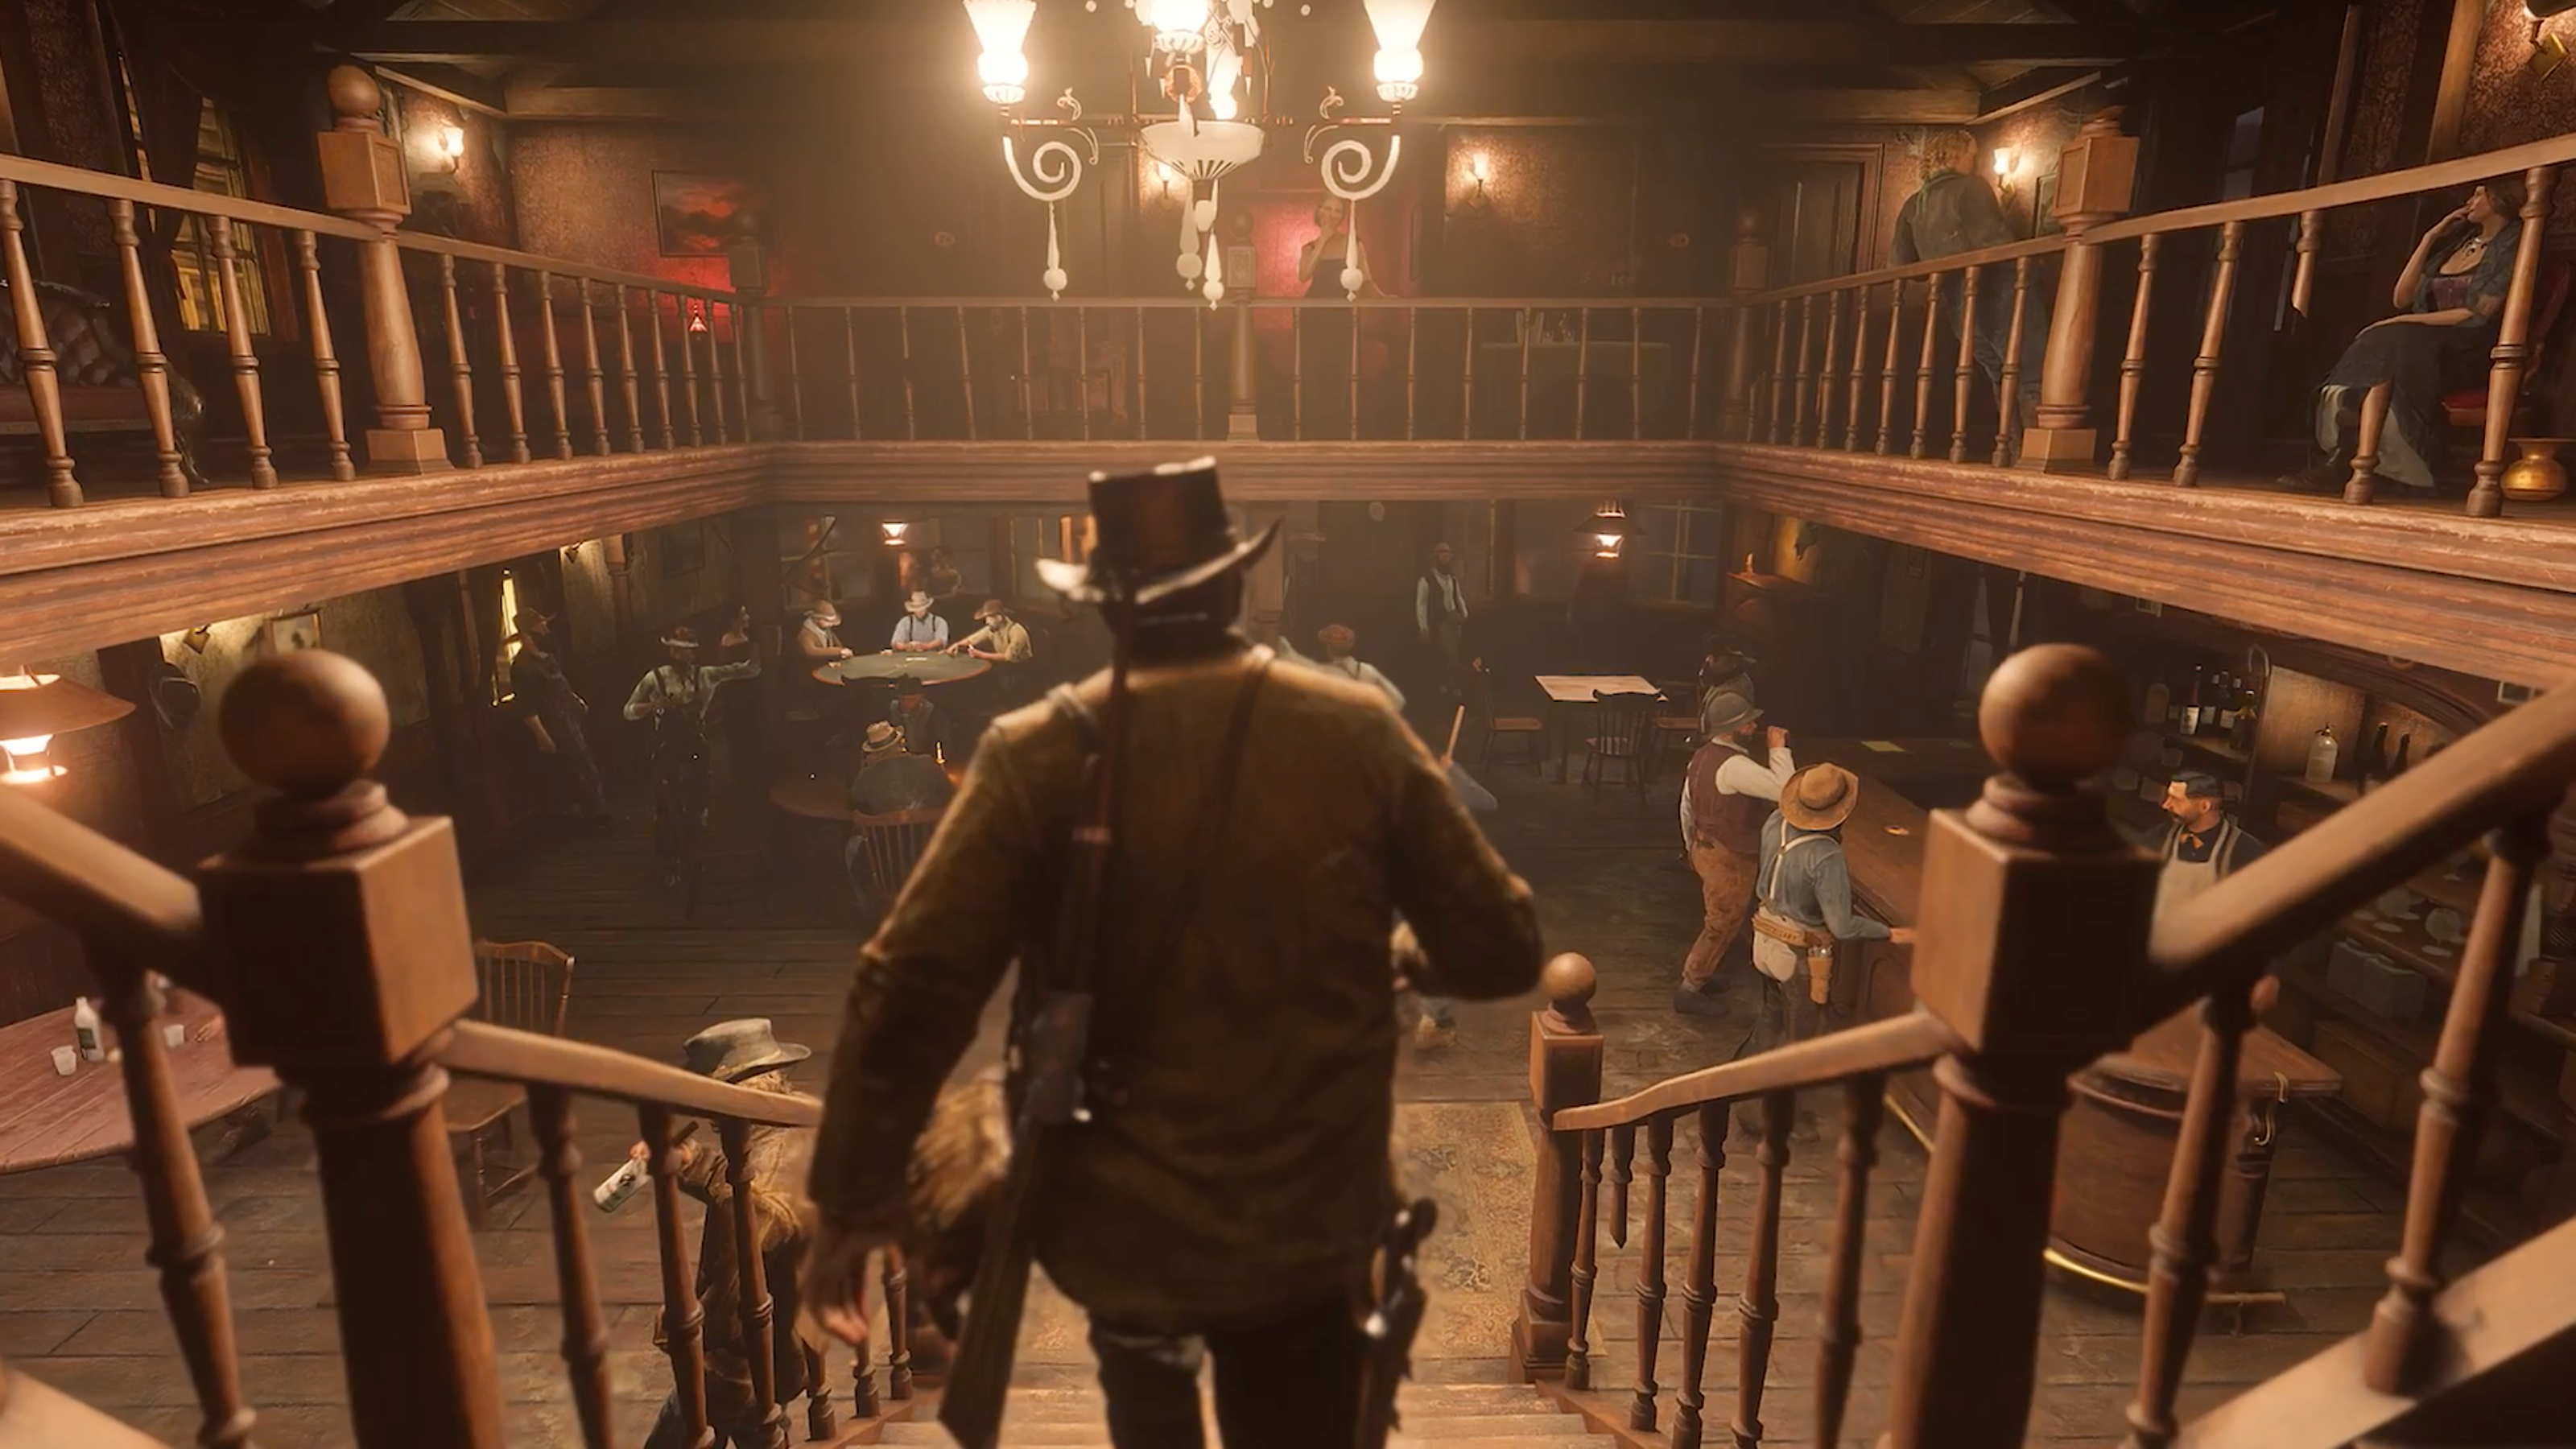 Pin By Anas Alslme On Places To Visit Red Dead Redemption Red Dead Redemption Ii Red Redemption 2